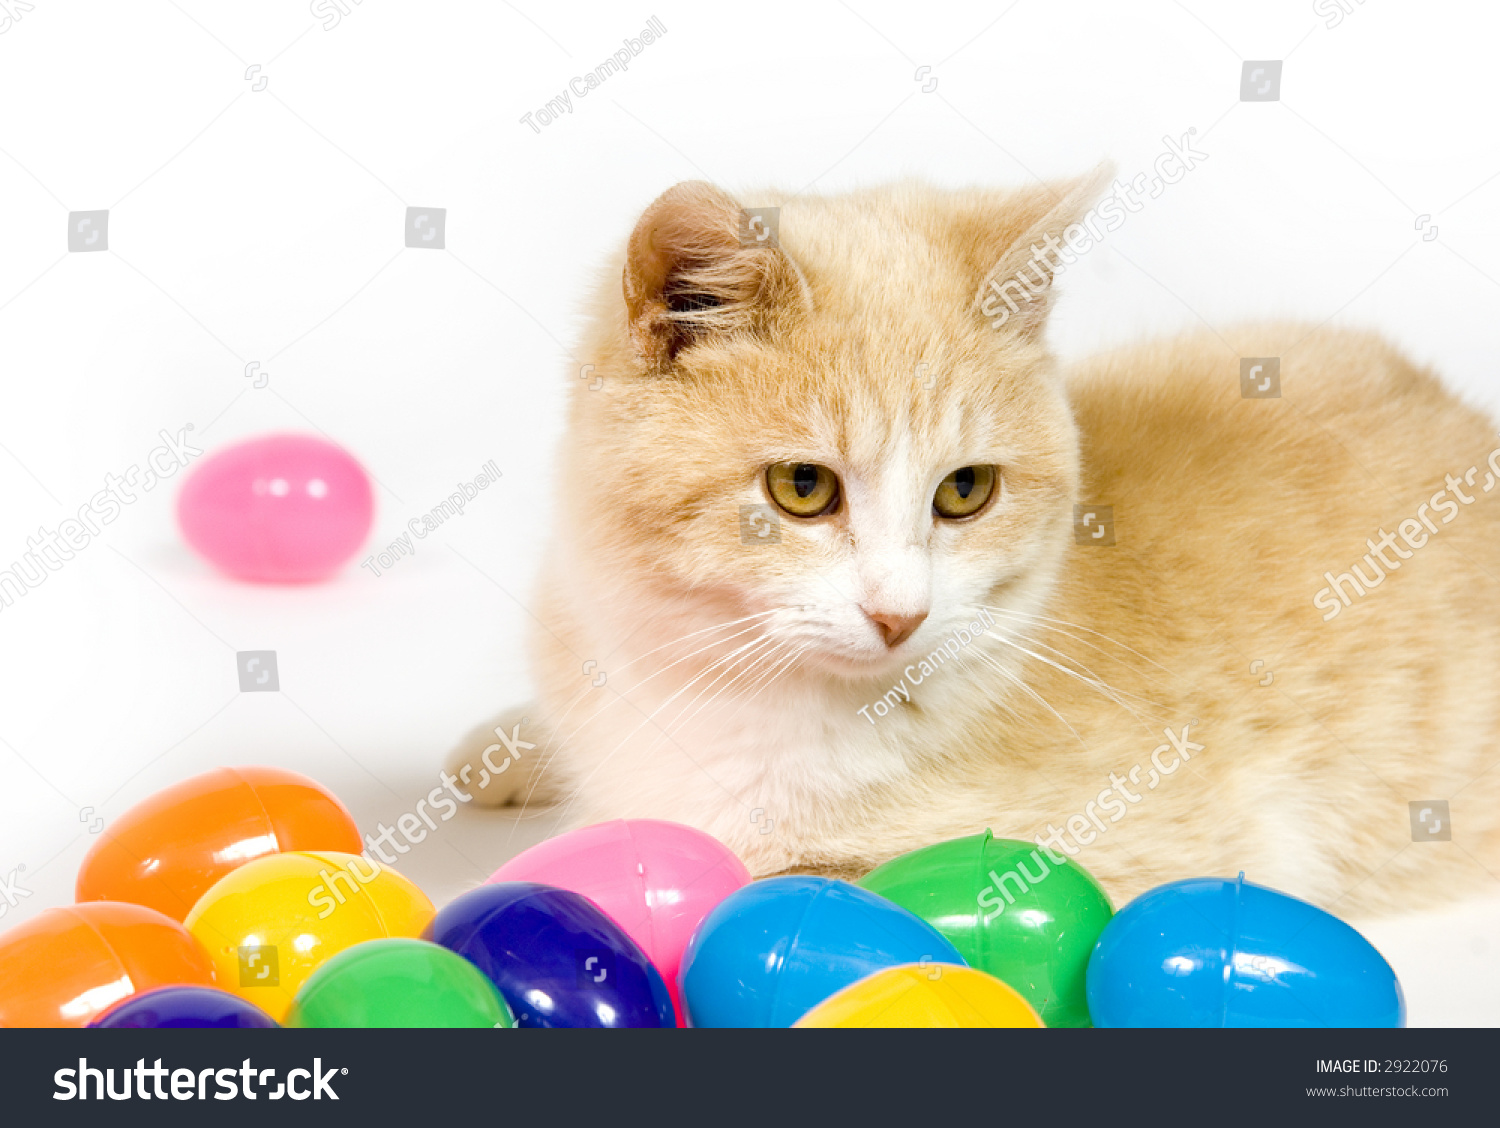 A Yellow Cat Sits Among Plastic Easter Eggs On White Background